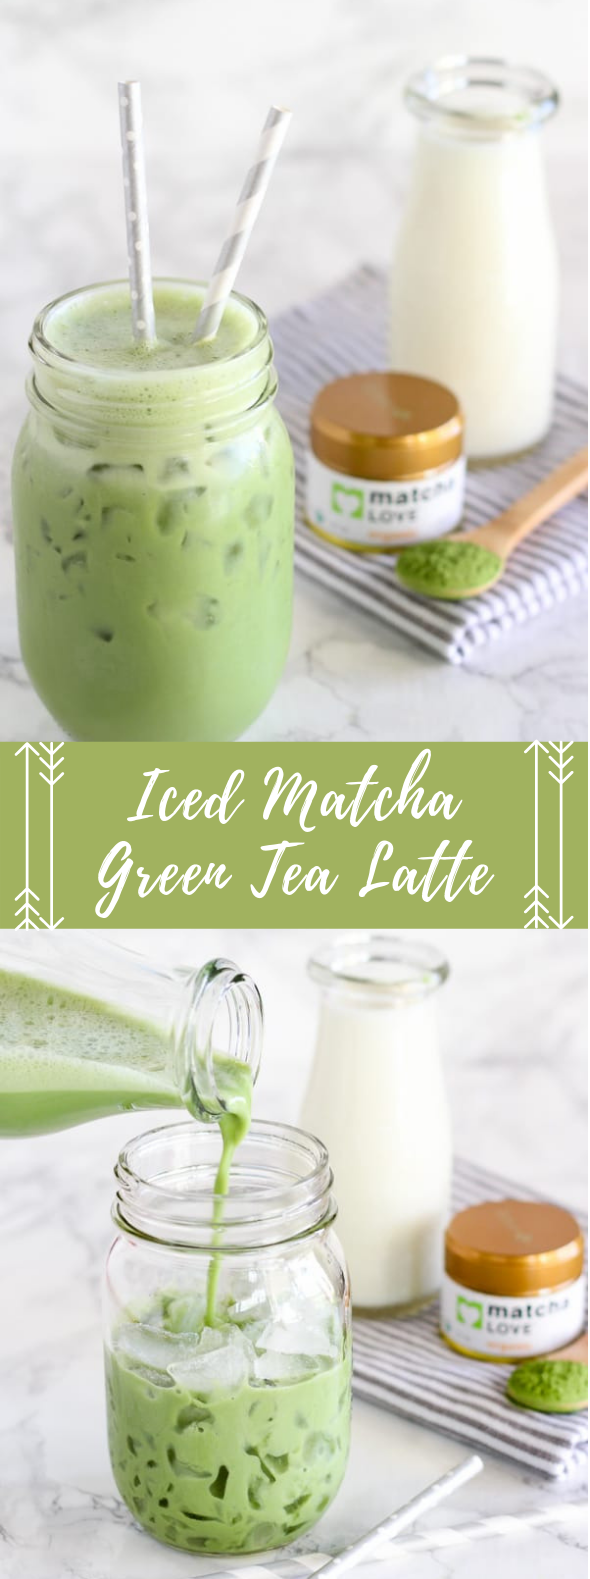 ICED MATCHA GREEN TEA LATTE #drink #greentea